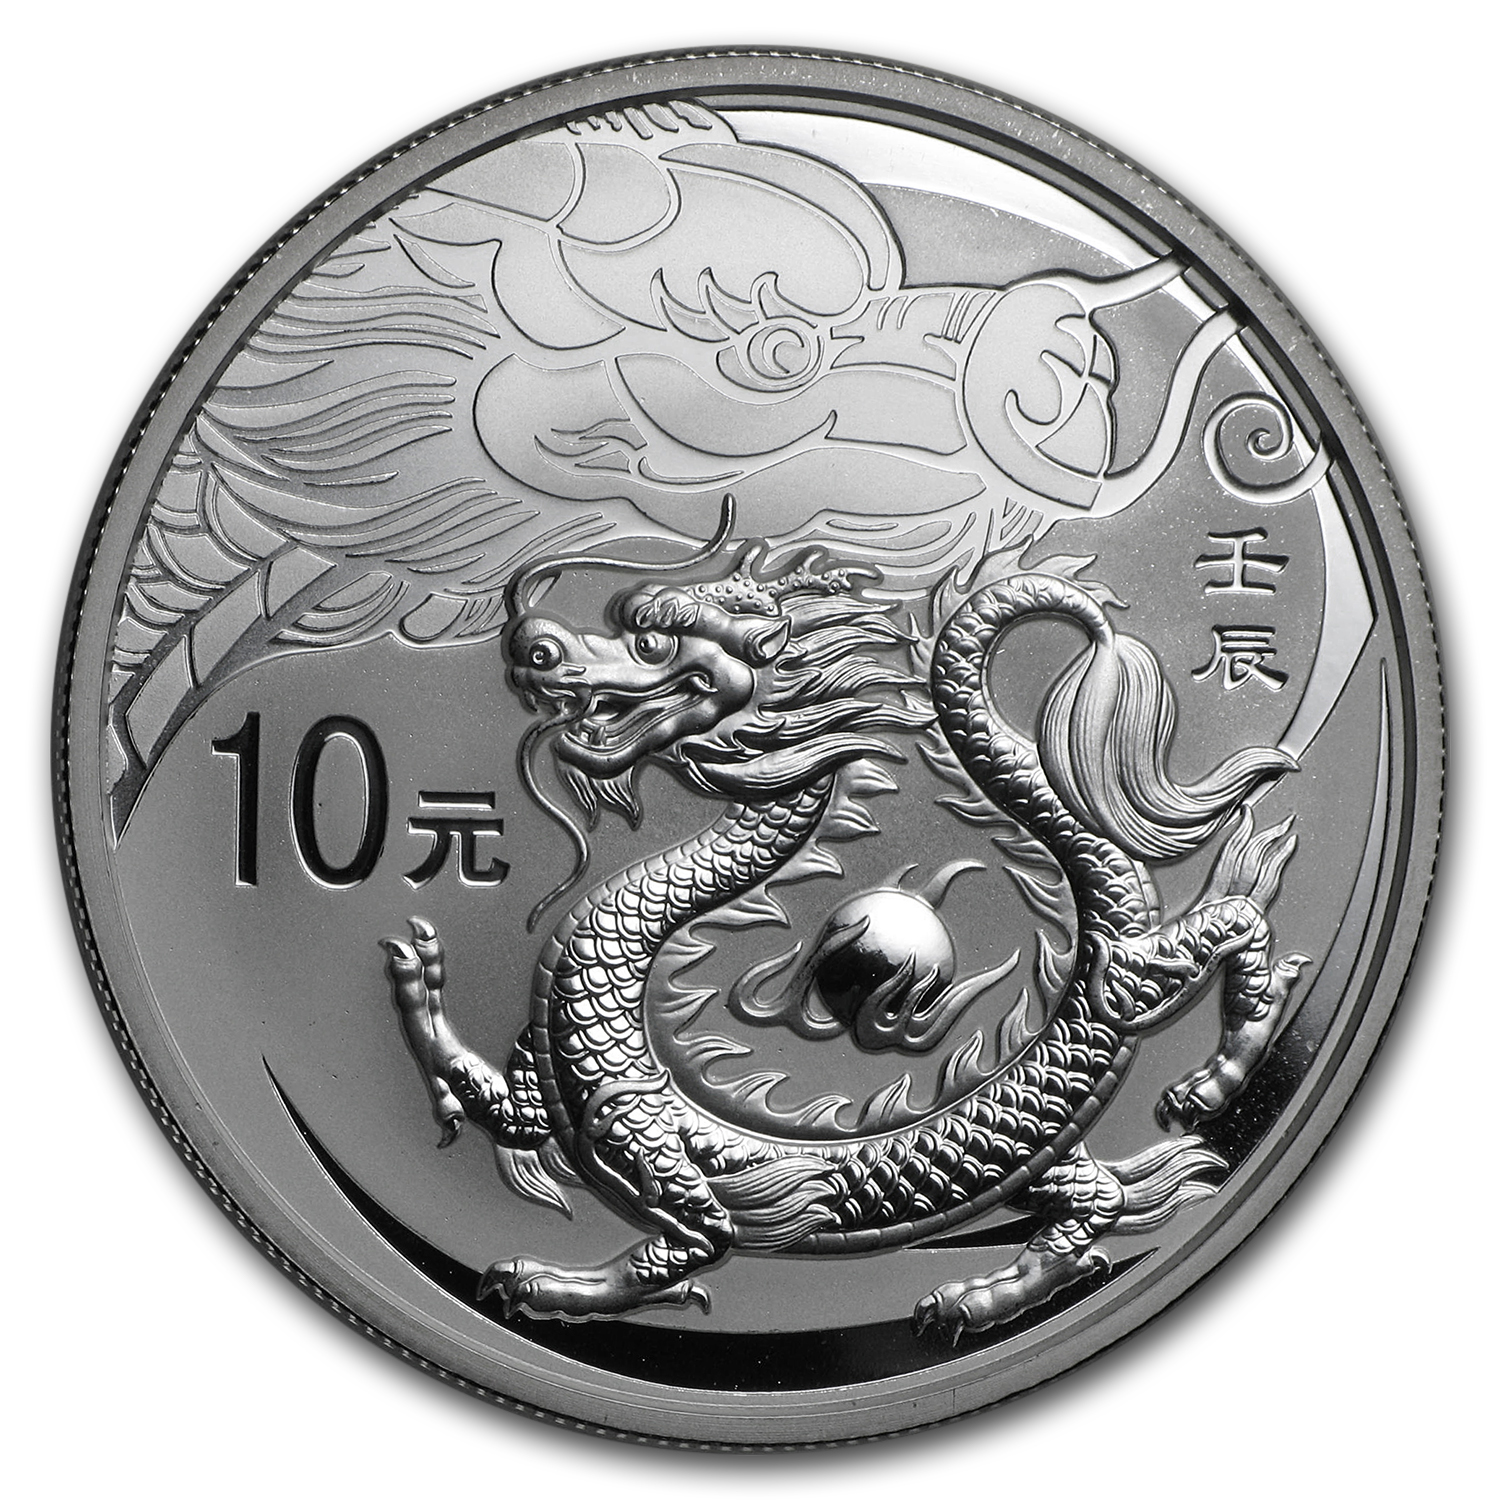 2012 China 1 oz Silver Dragon Proof (w/Box & COA)